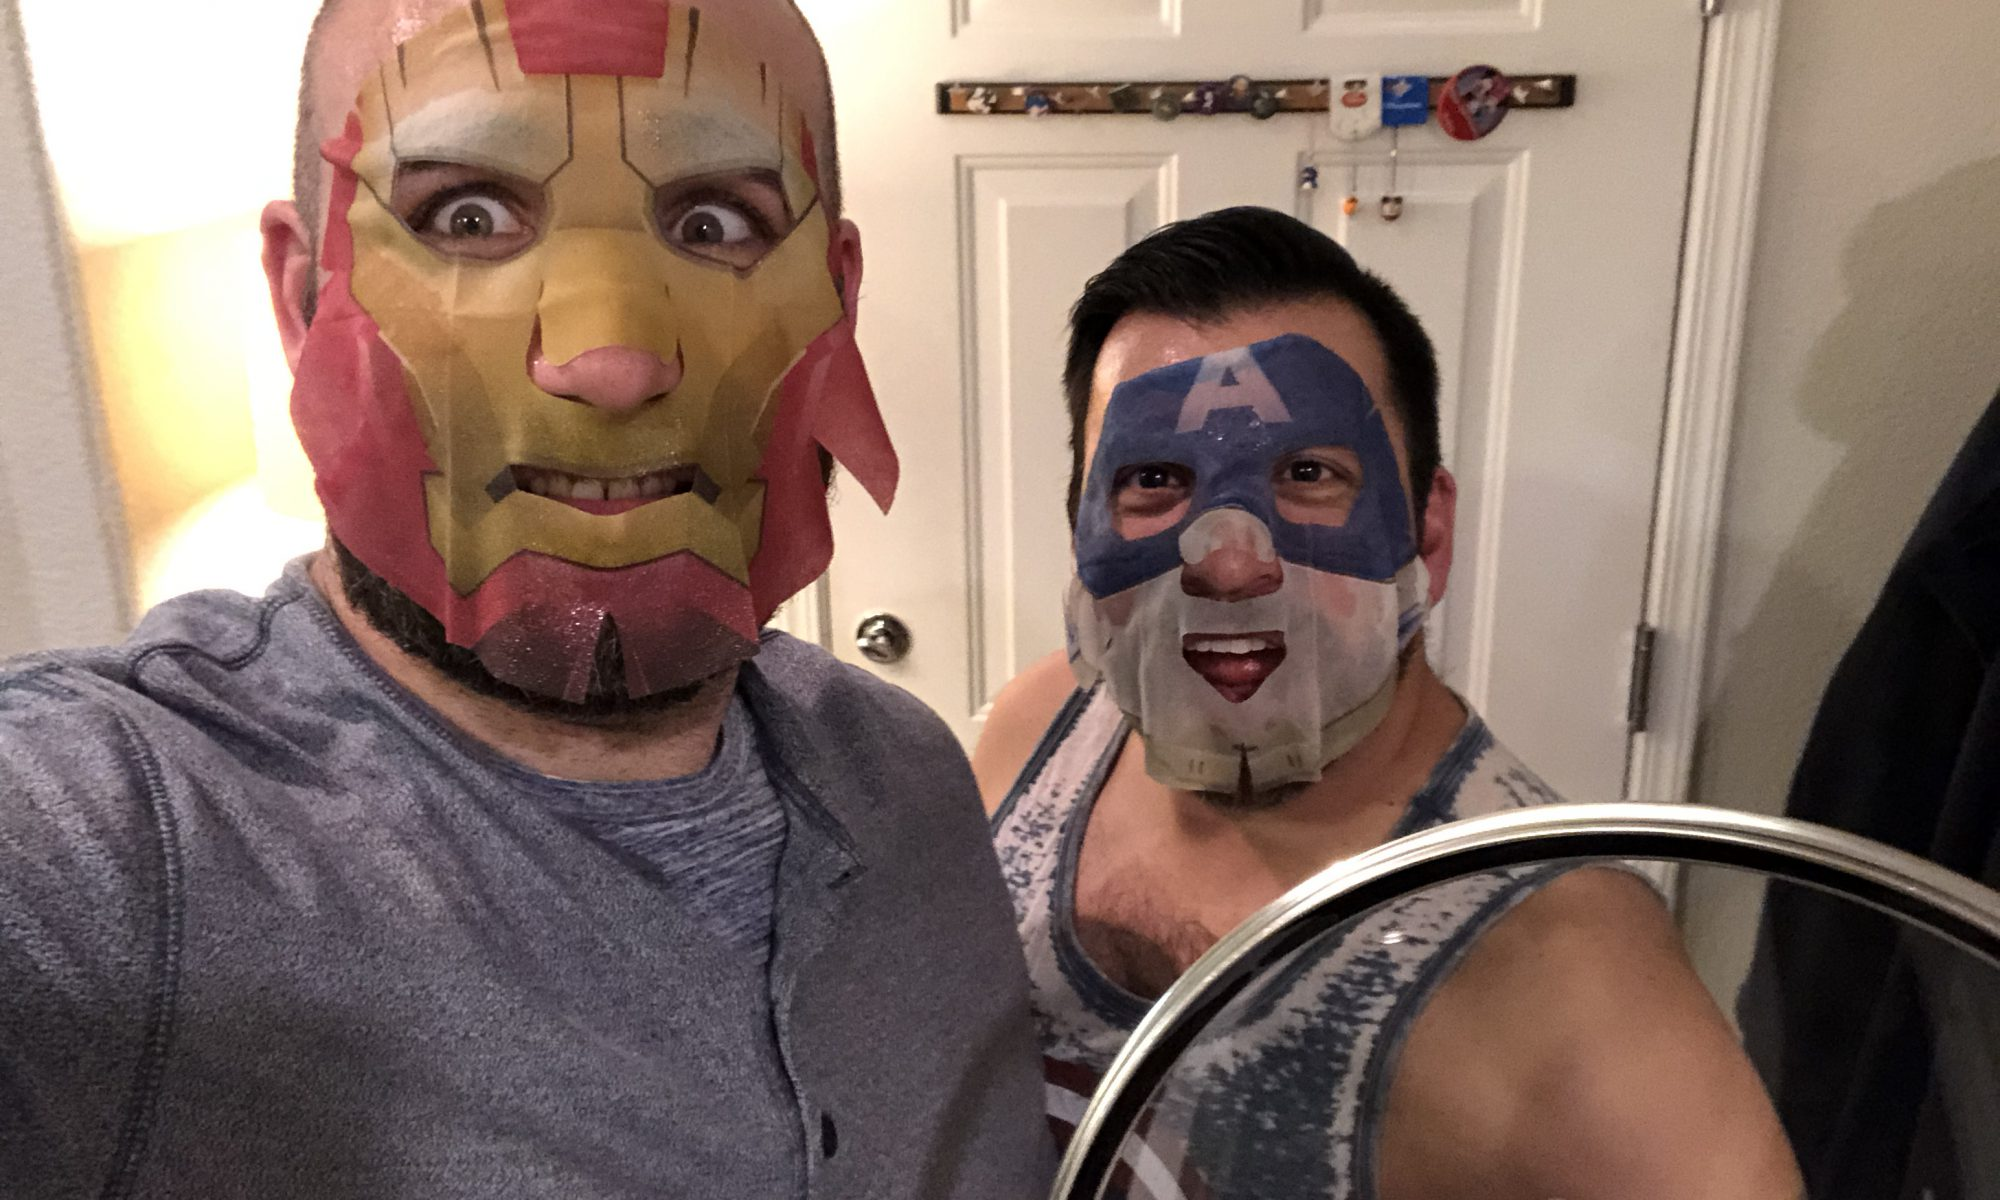 Avengers we are not.